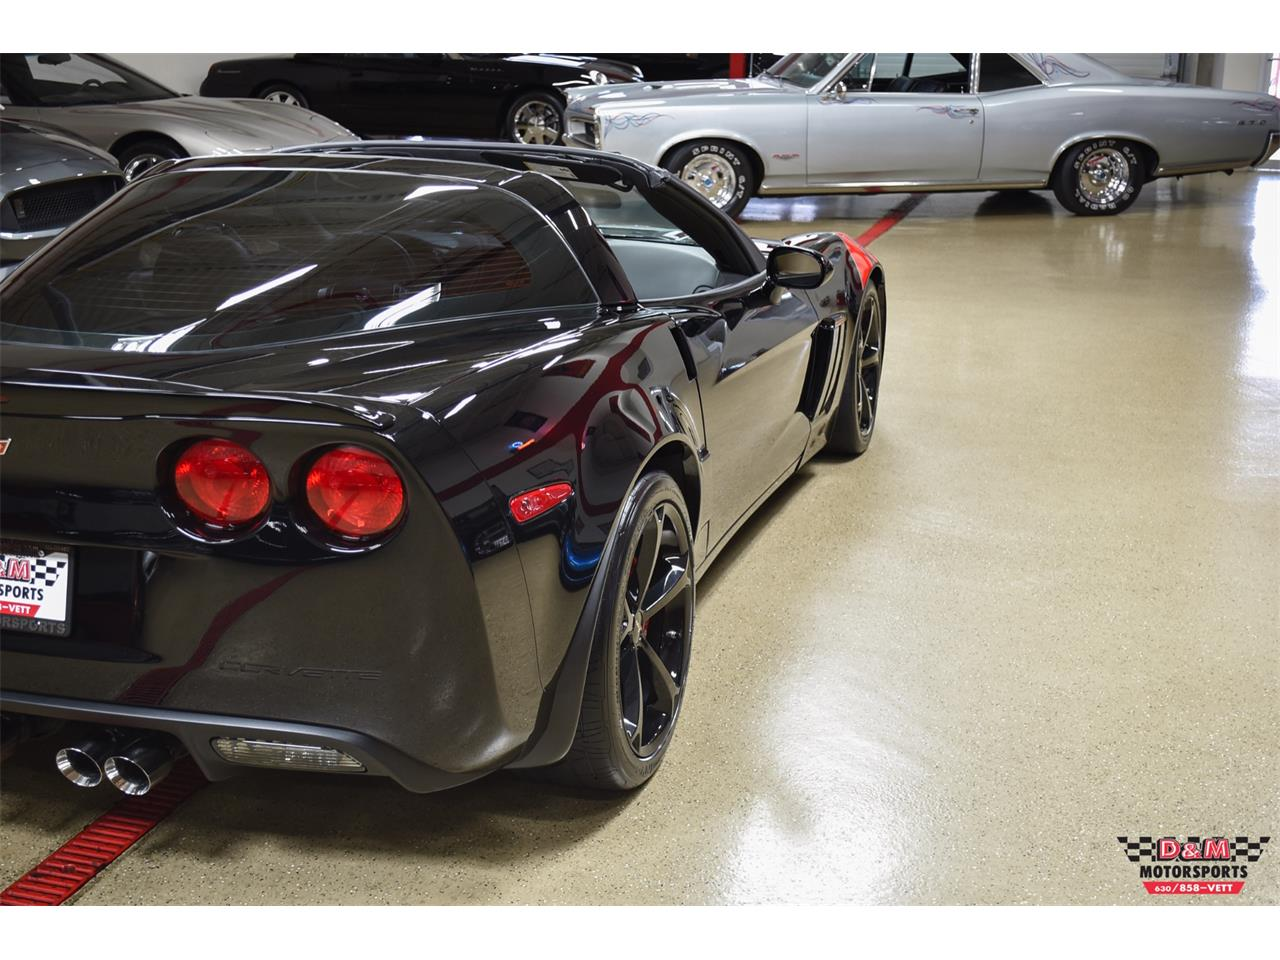 Large Picture of '10 Chevrolet Corvette located in Illinois - $37,995.00 Offered by D & M Motorsports - PUJ0